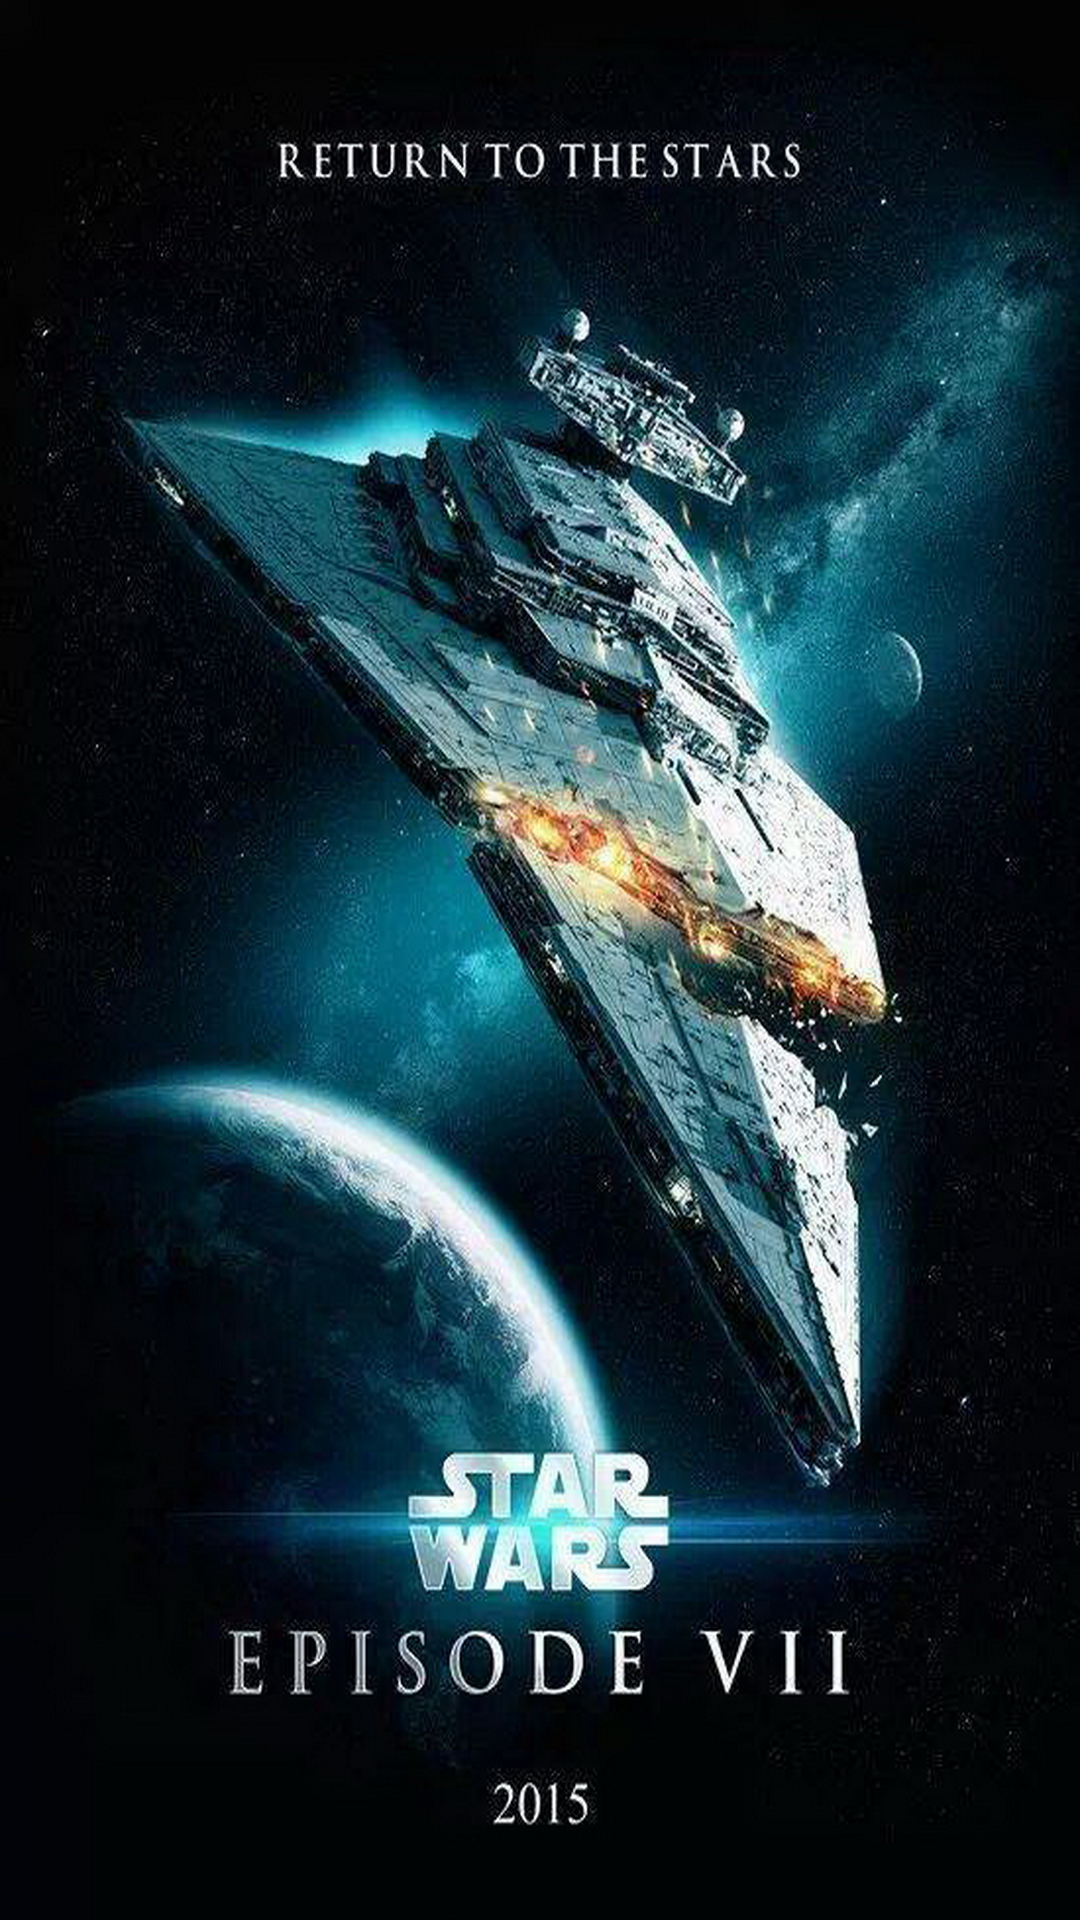 49 Star Wars Wallpapers For Iphone On Wallpapersafari